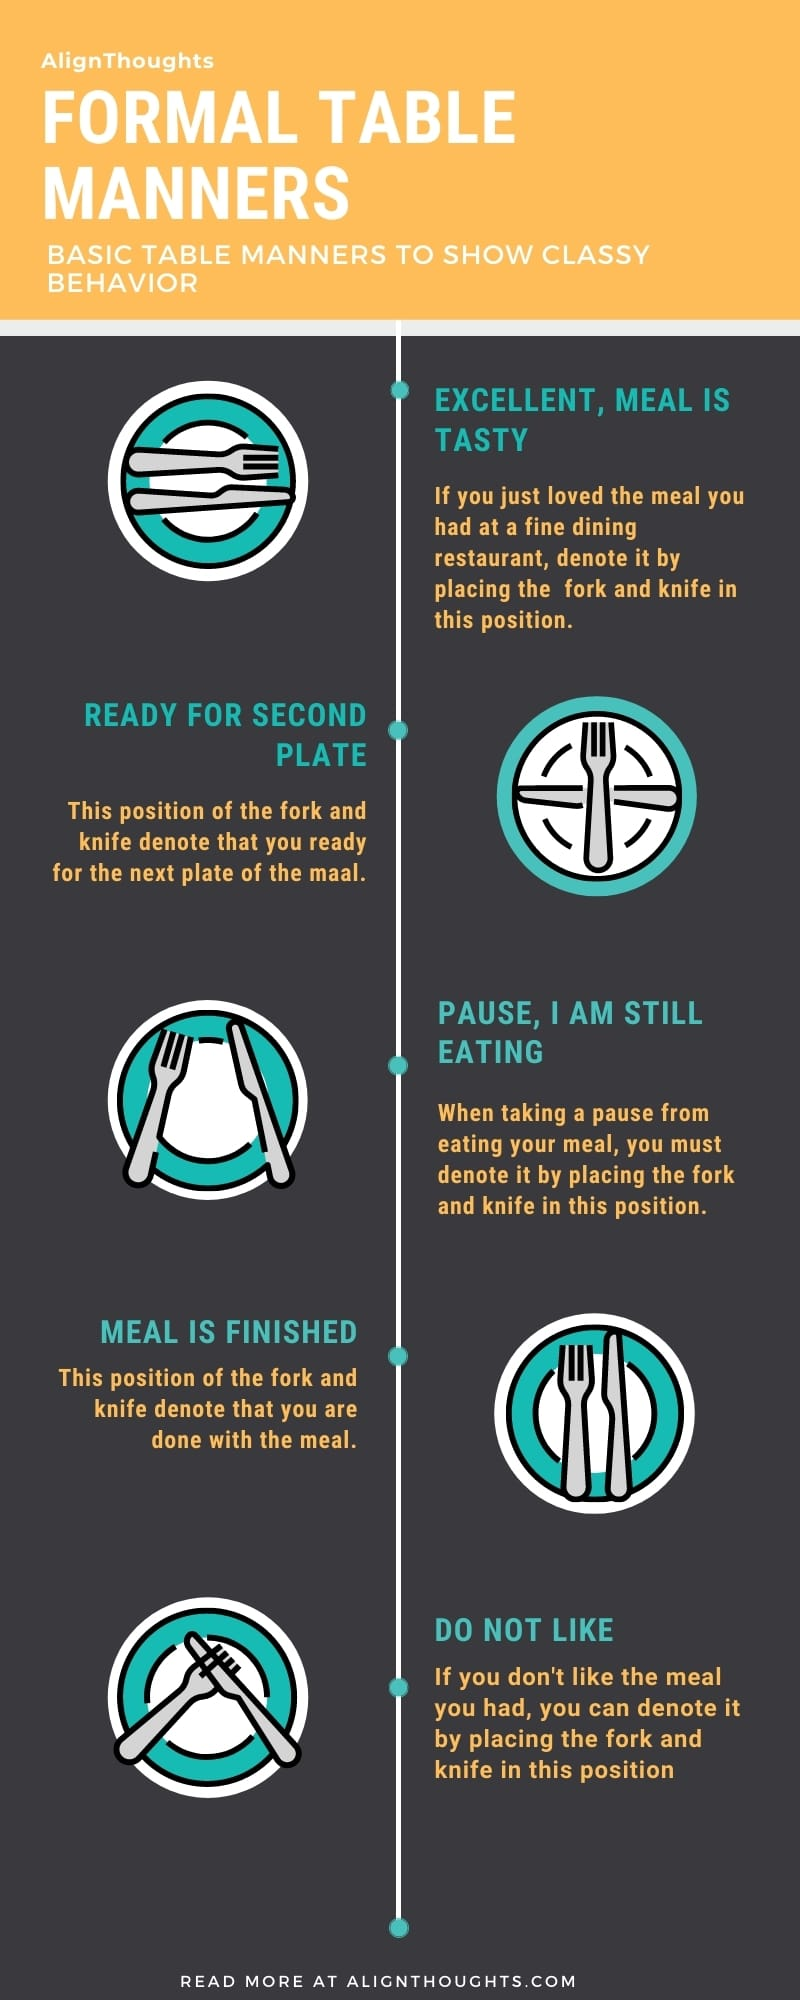 Table manners-infographic-alignthoughts